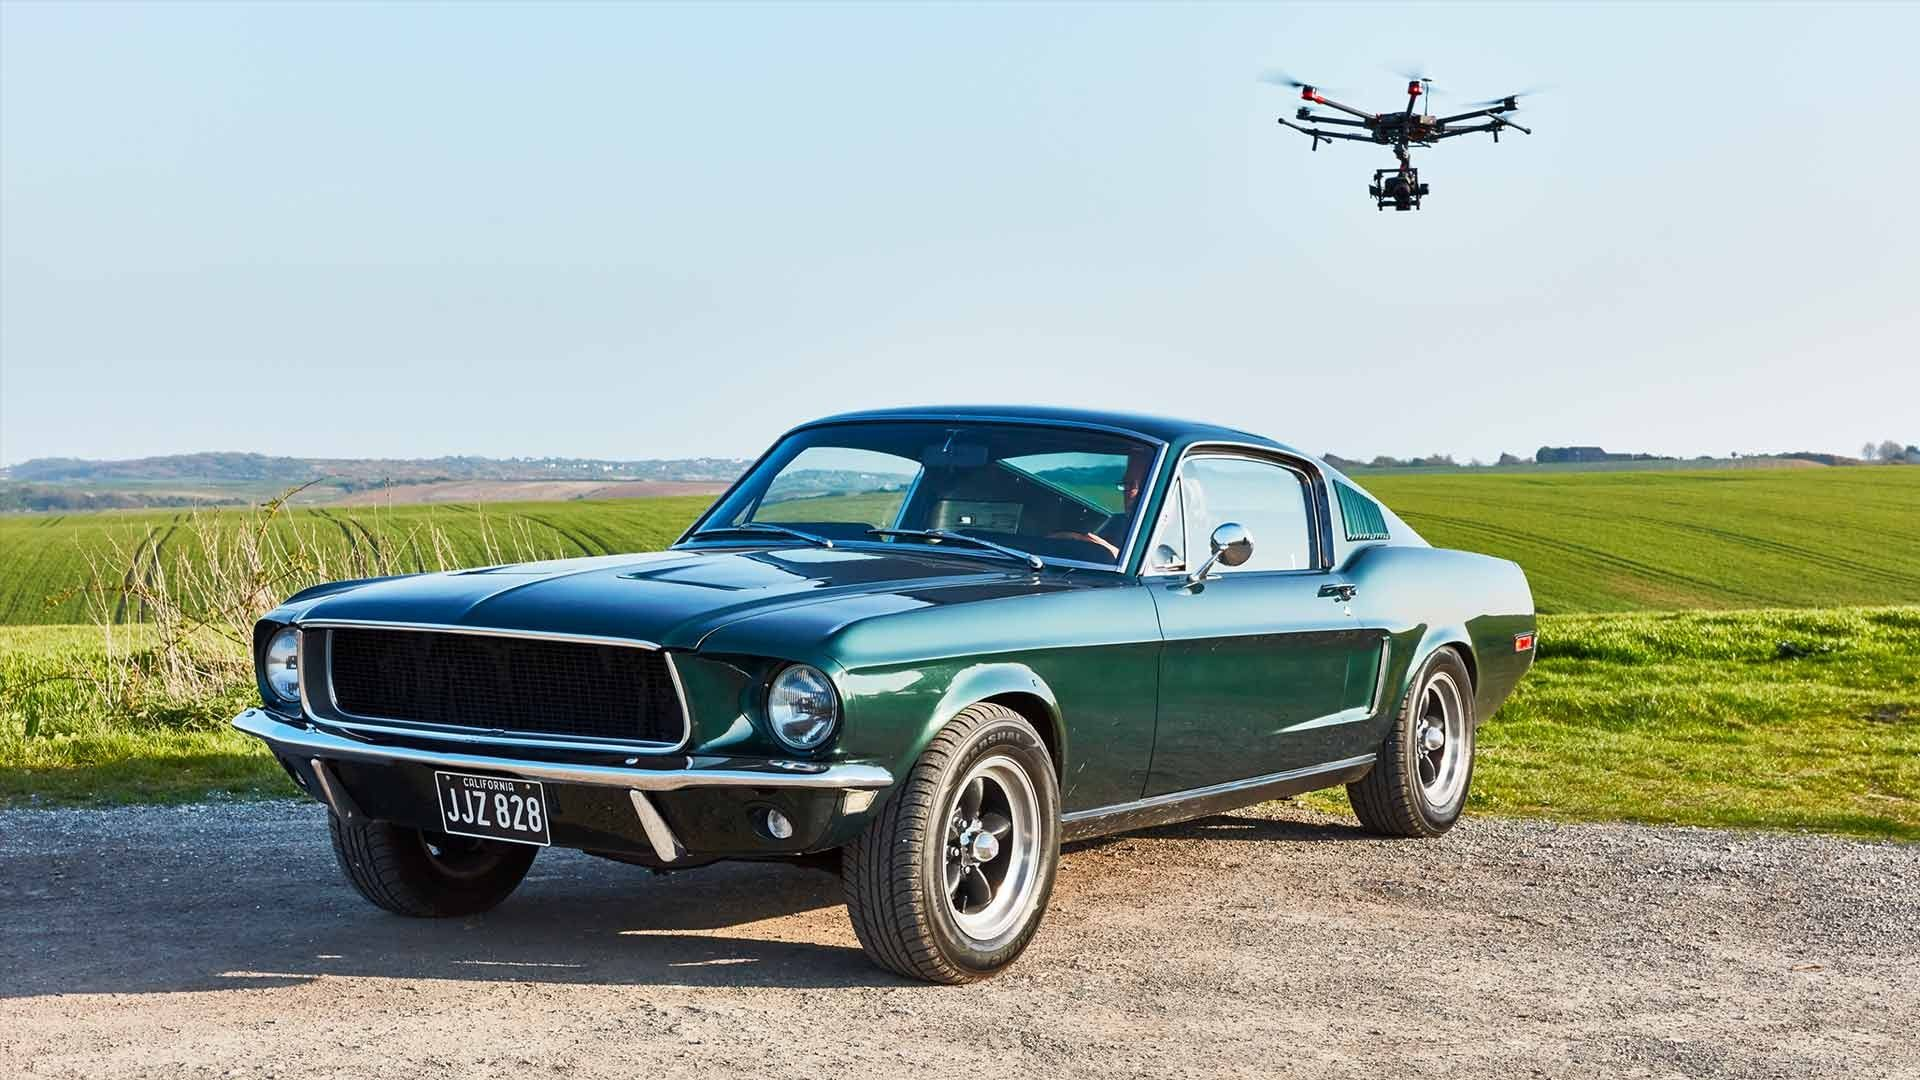 Drone flying over a vintage car